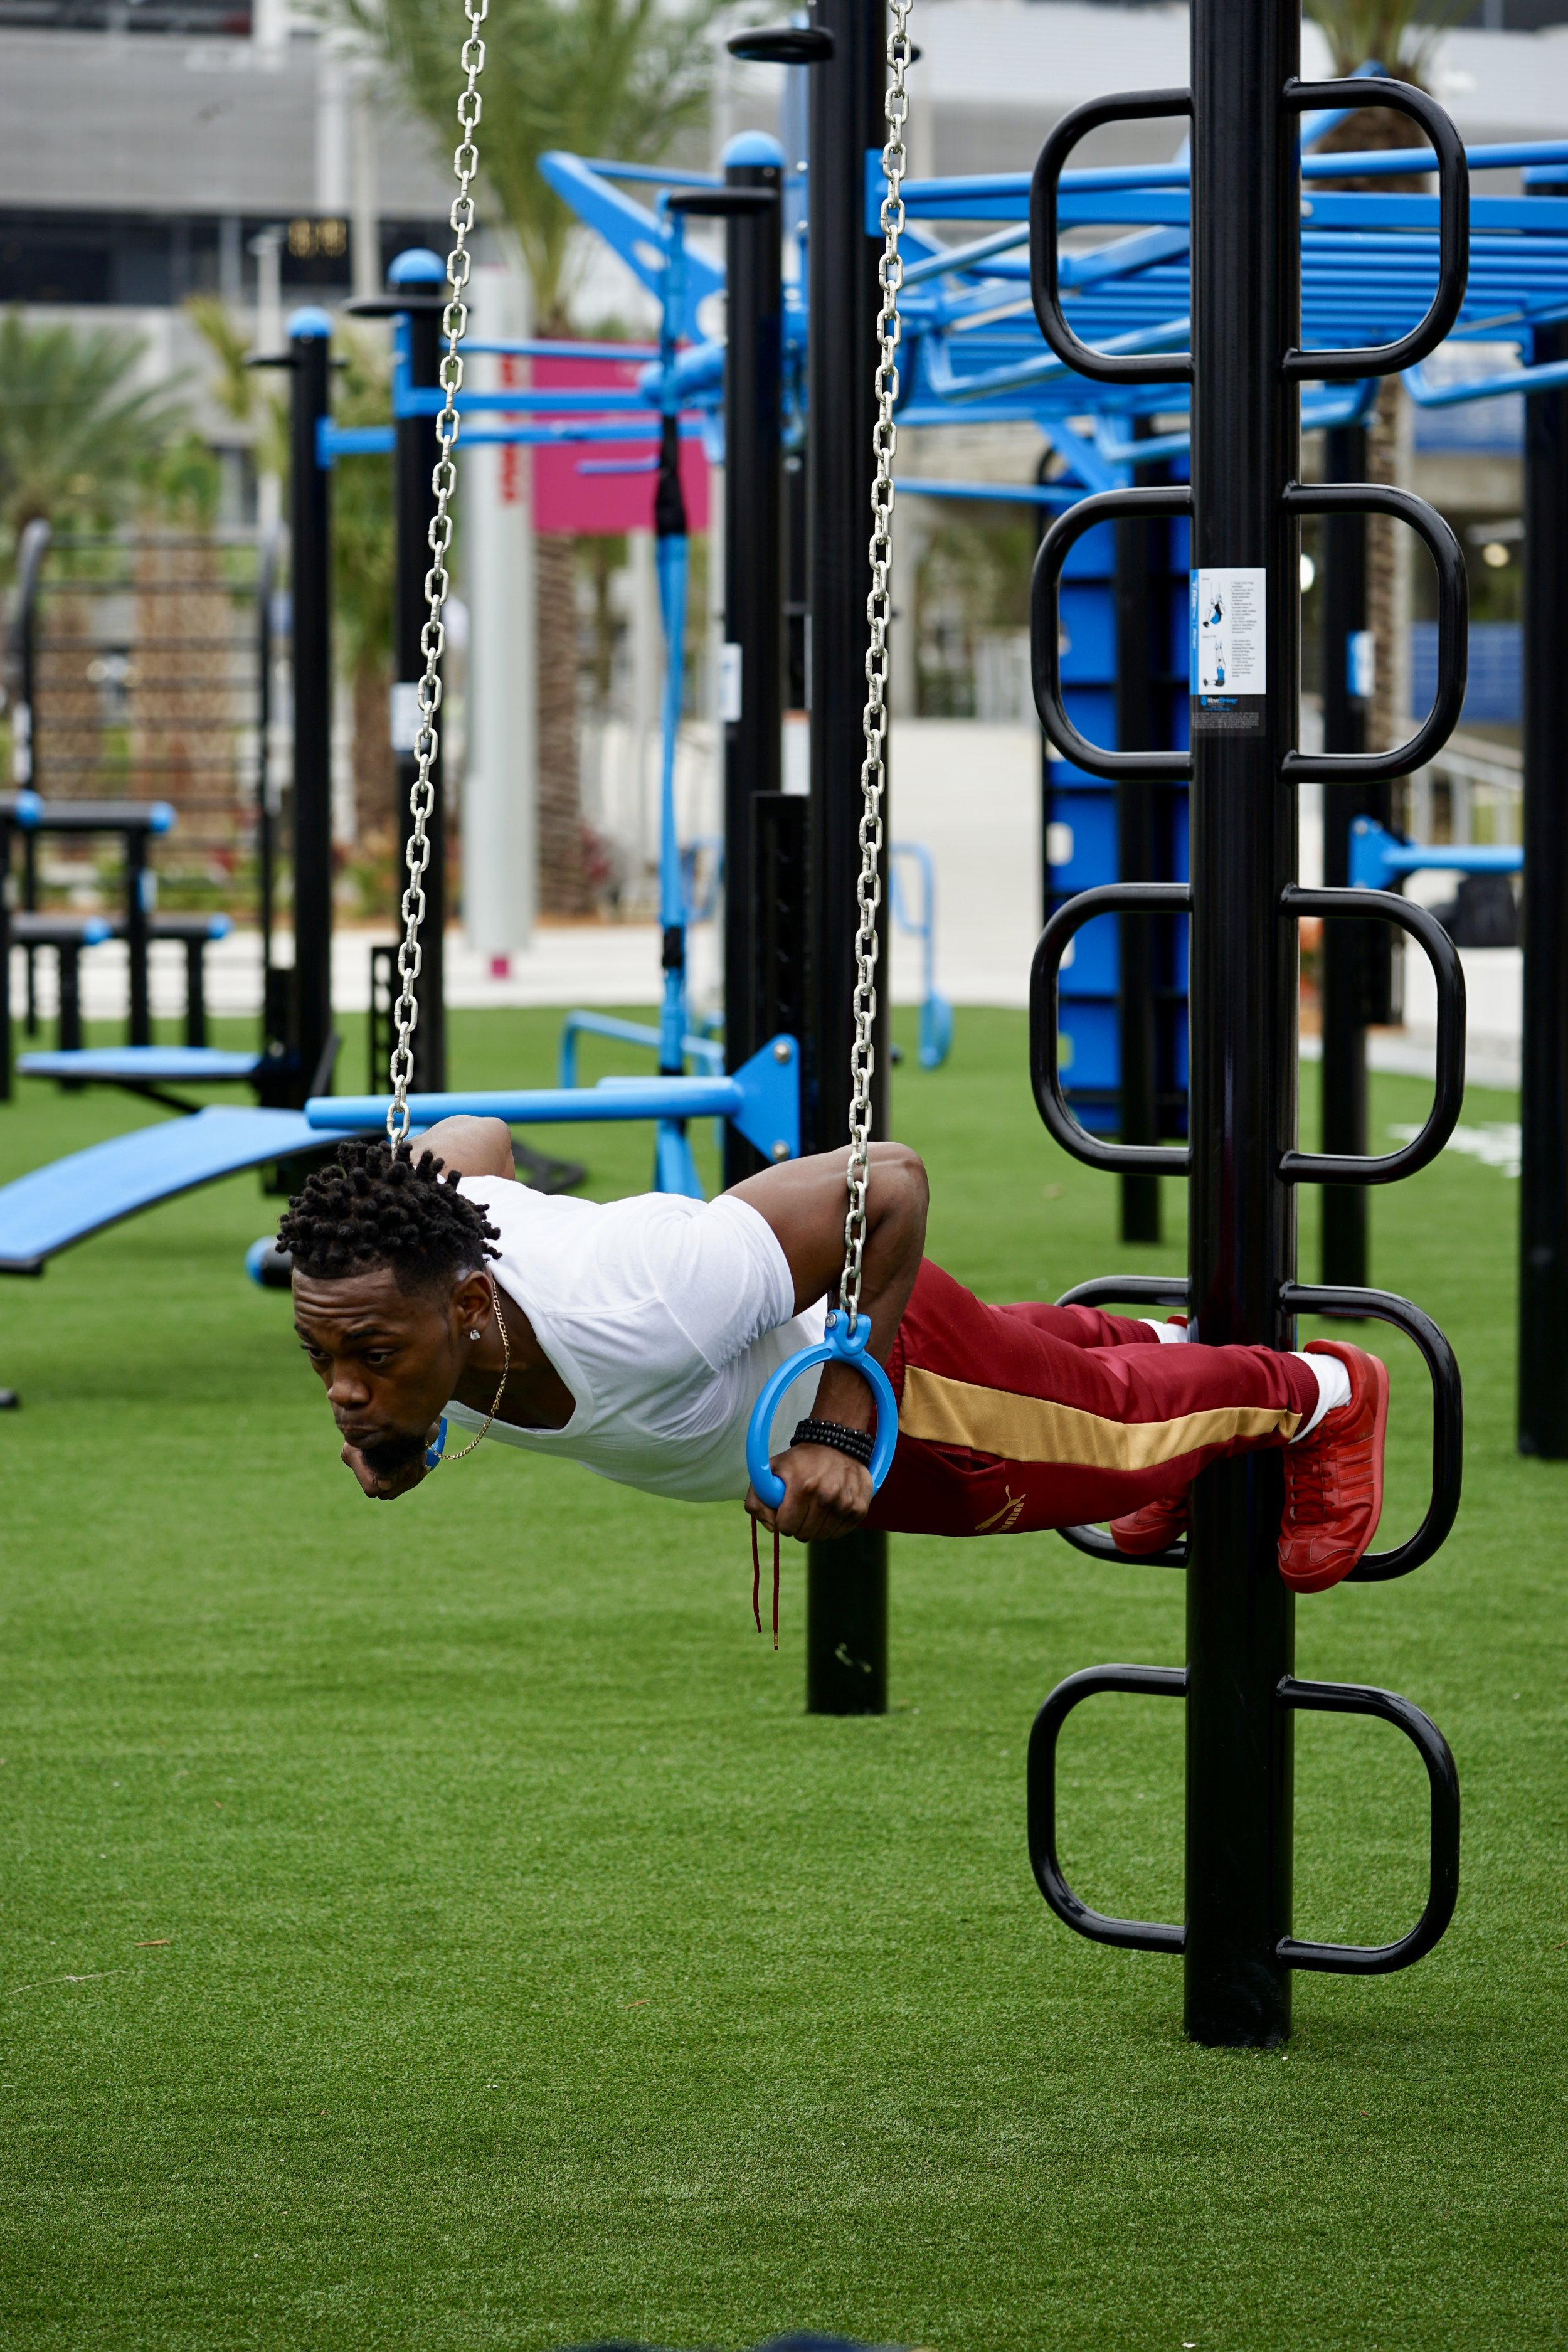 Outdoor rings fitness calisthenics workout equipment